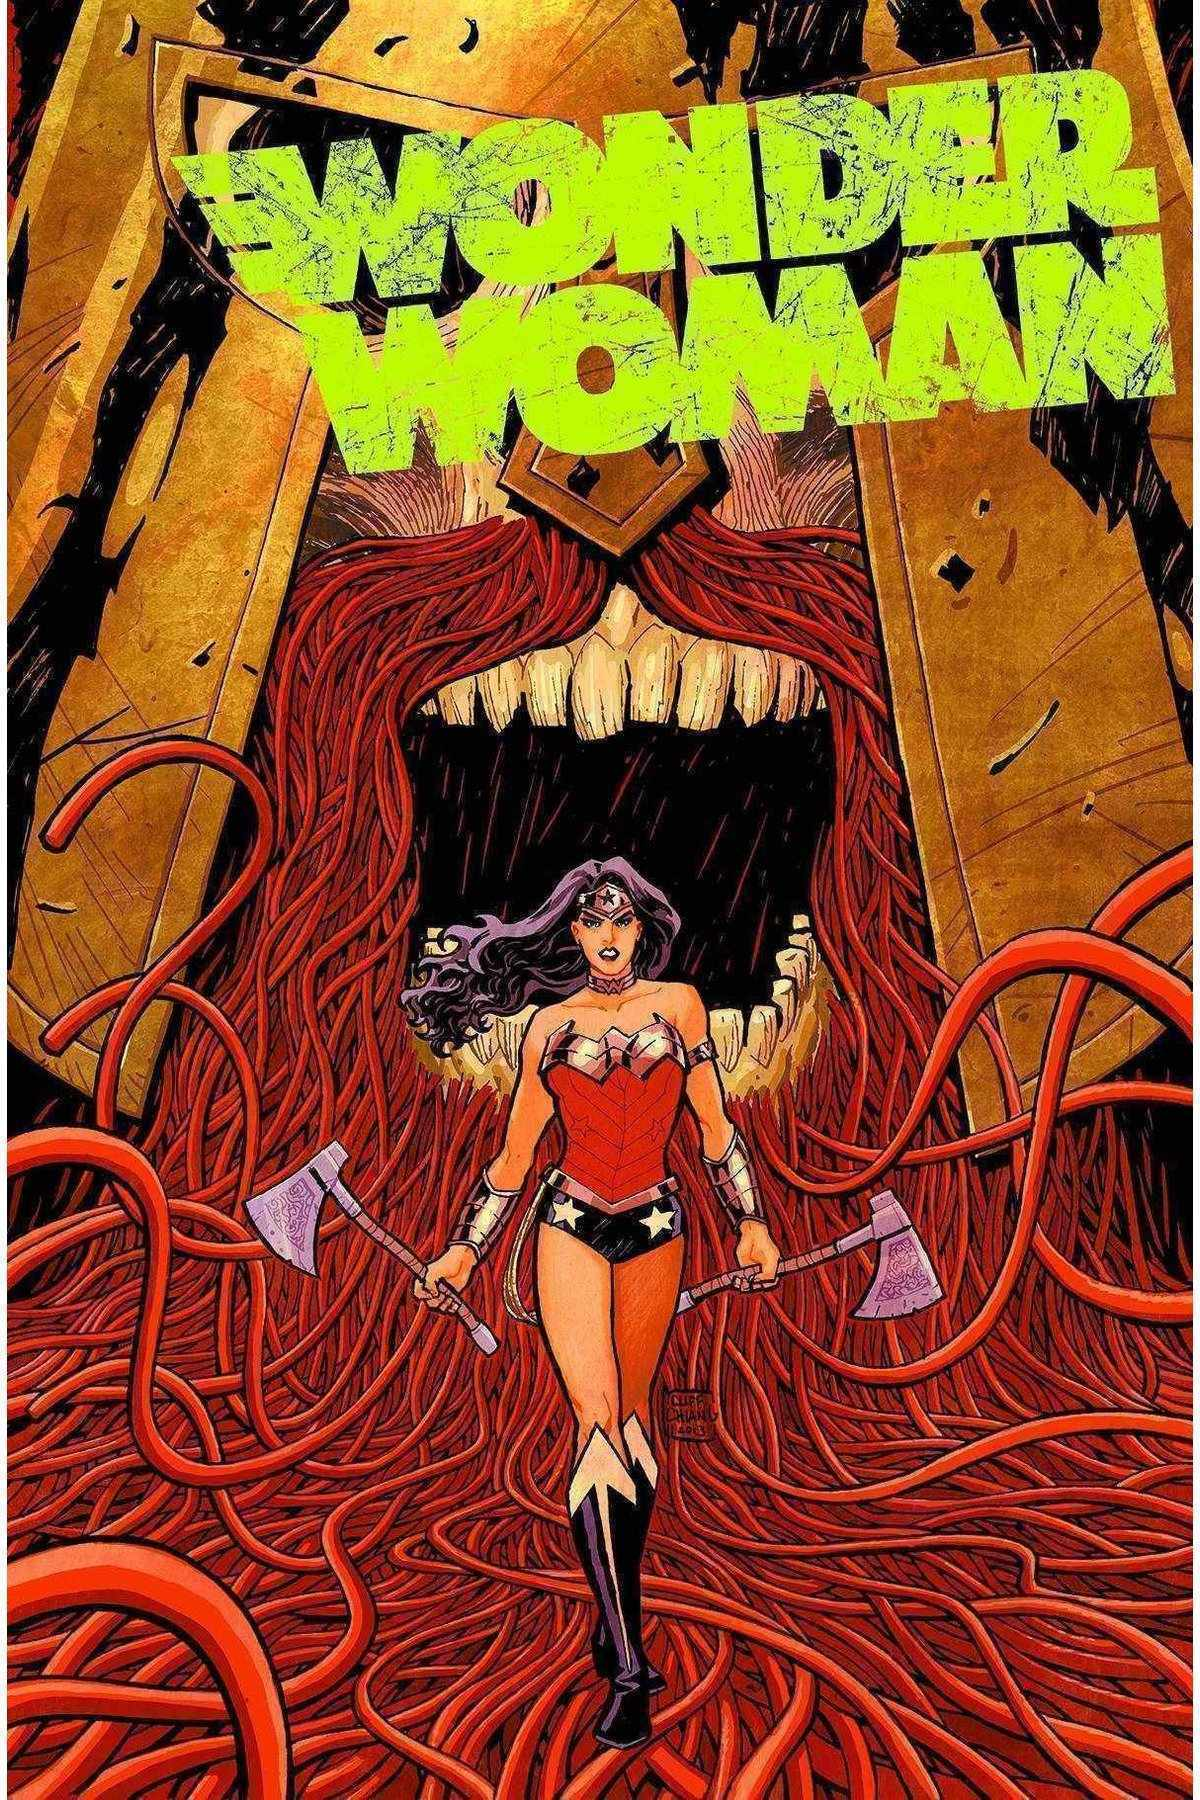 wonder-woman-vol-4-war-(n52)-diamond-9781401249540-thegamersden.com